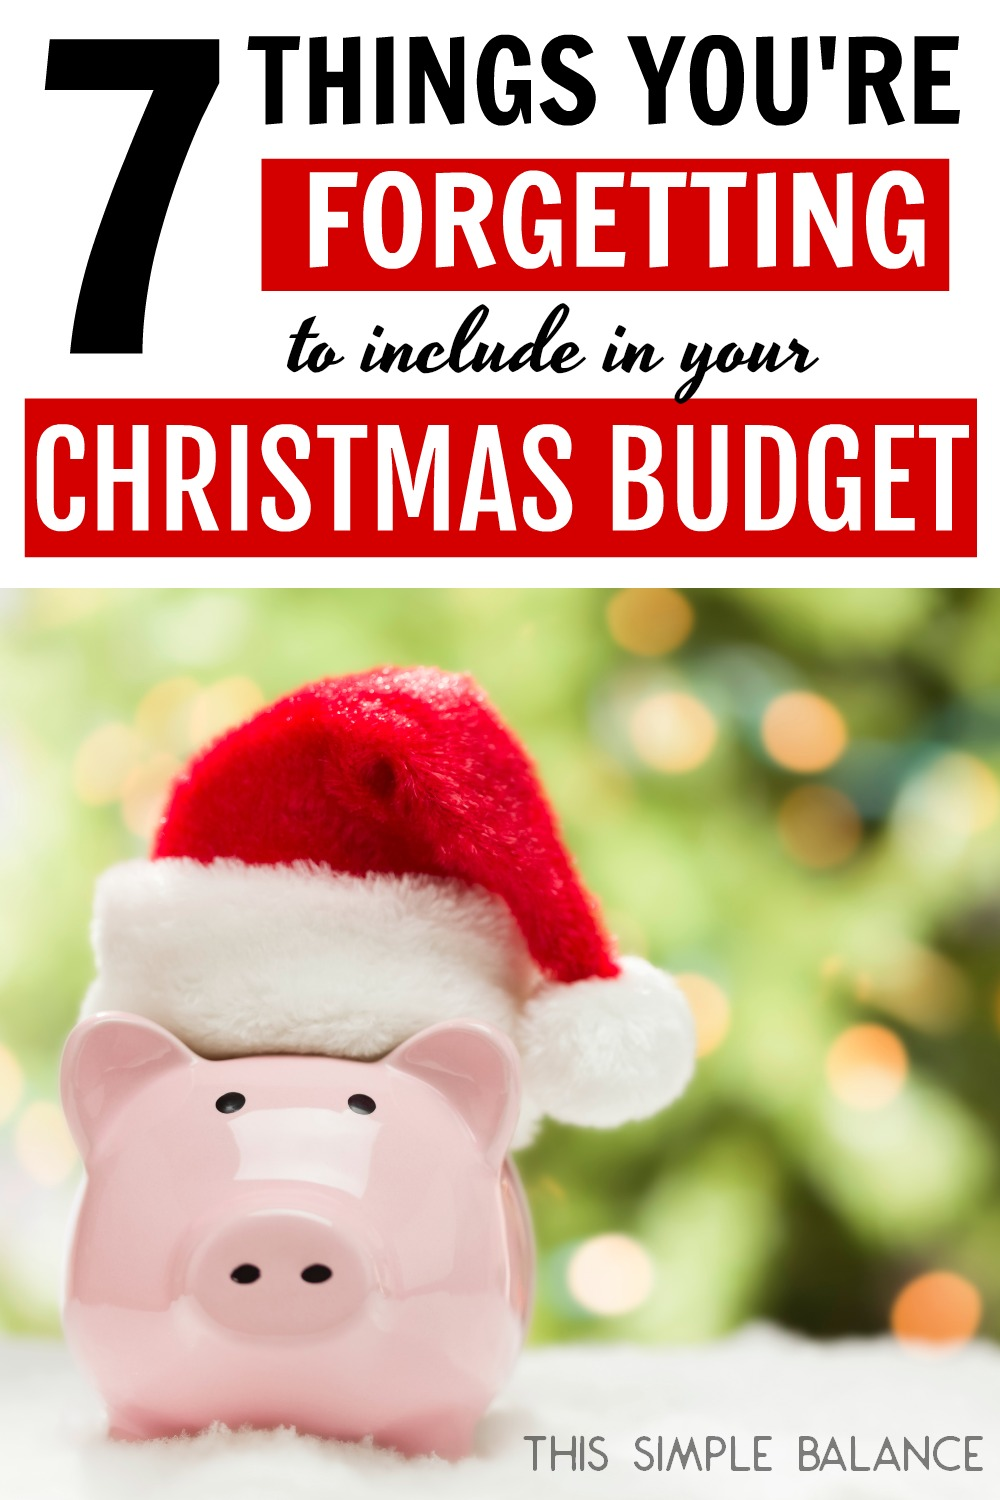 Is your Christmas budget really realistic? If you arent including these 7 items, it probably isnt. Make this a debt-free Christmas by setting an accurate budget!